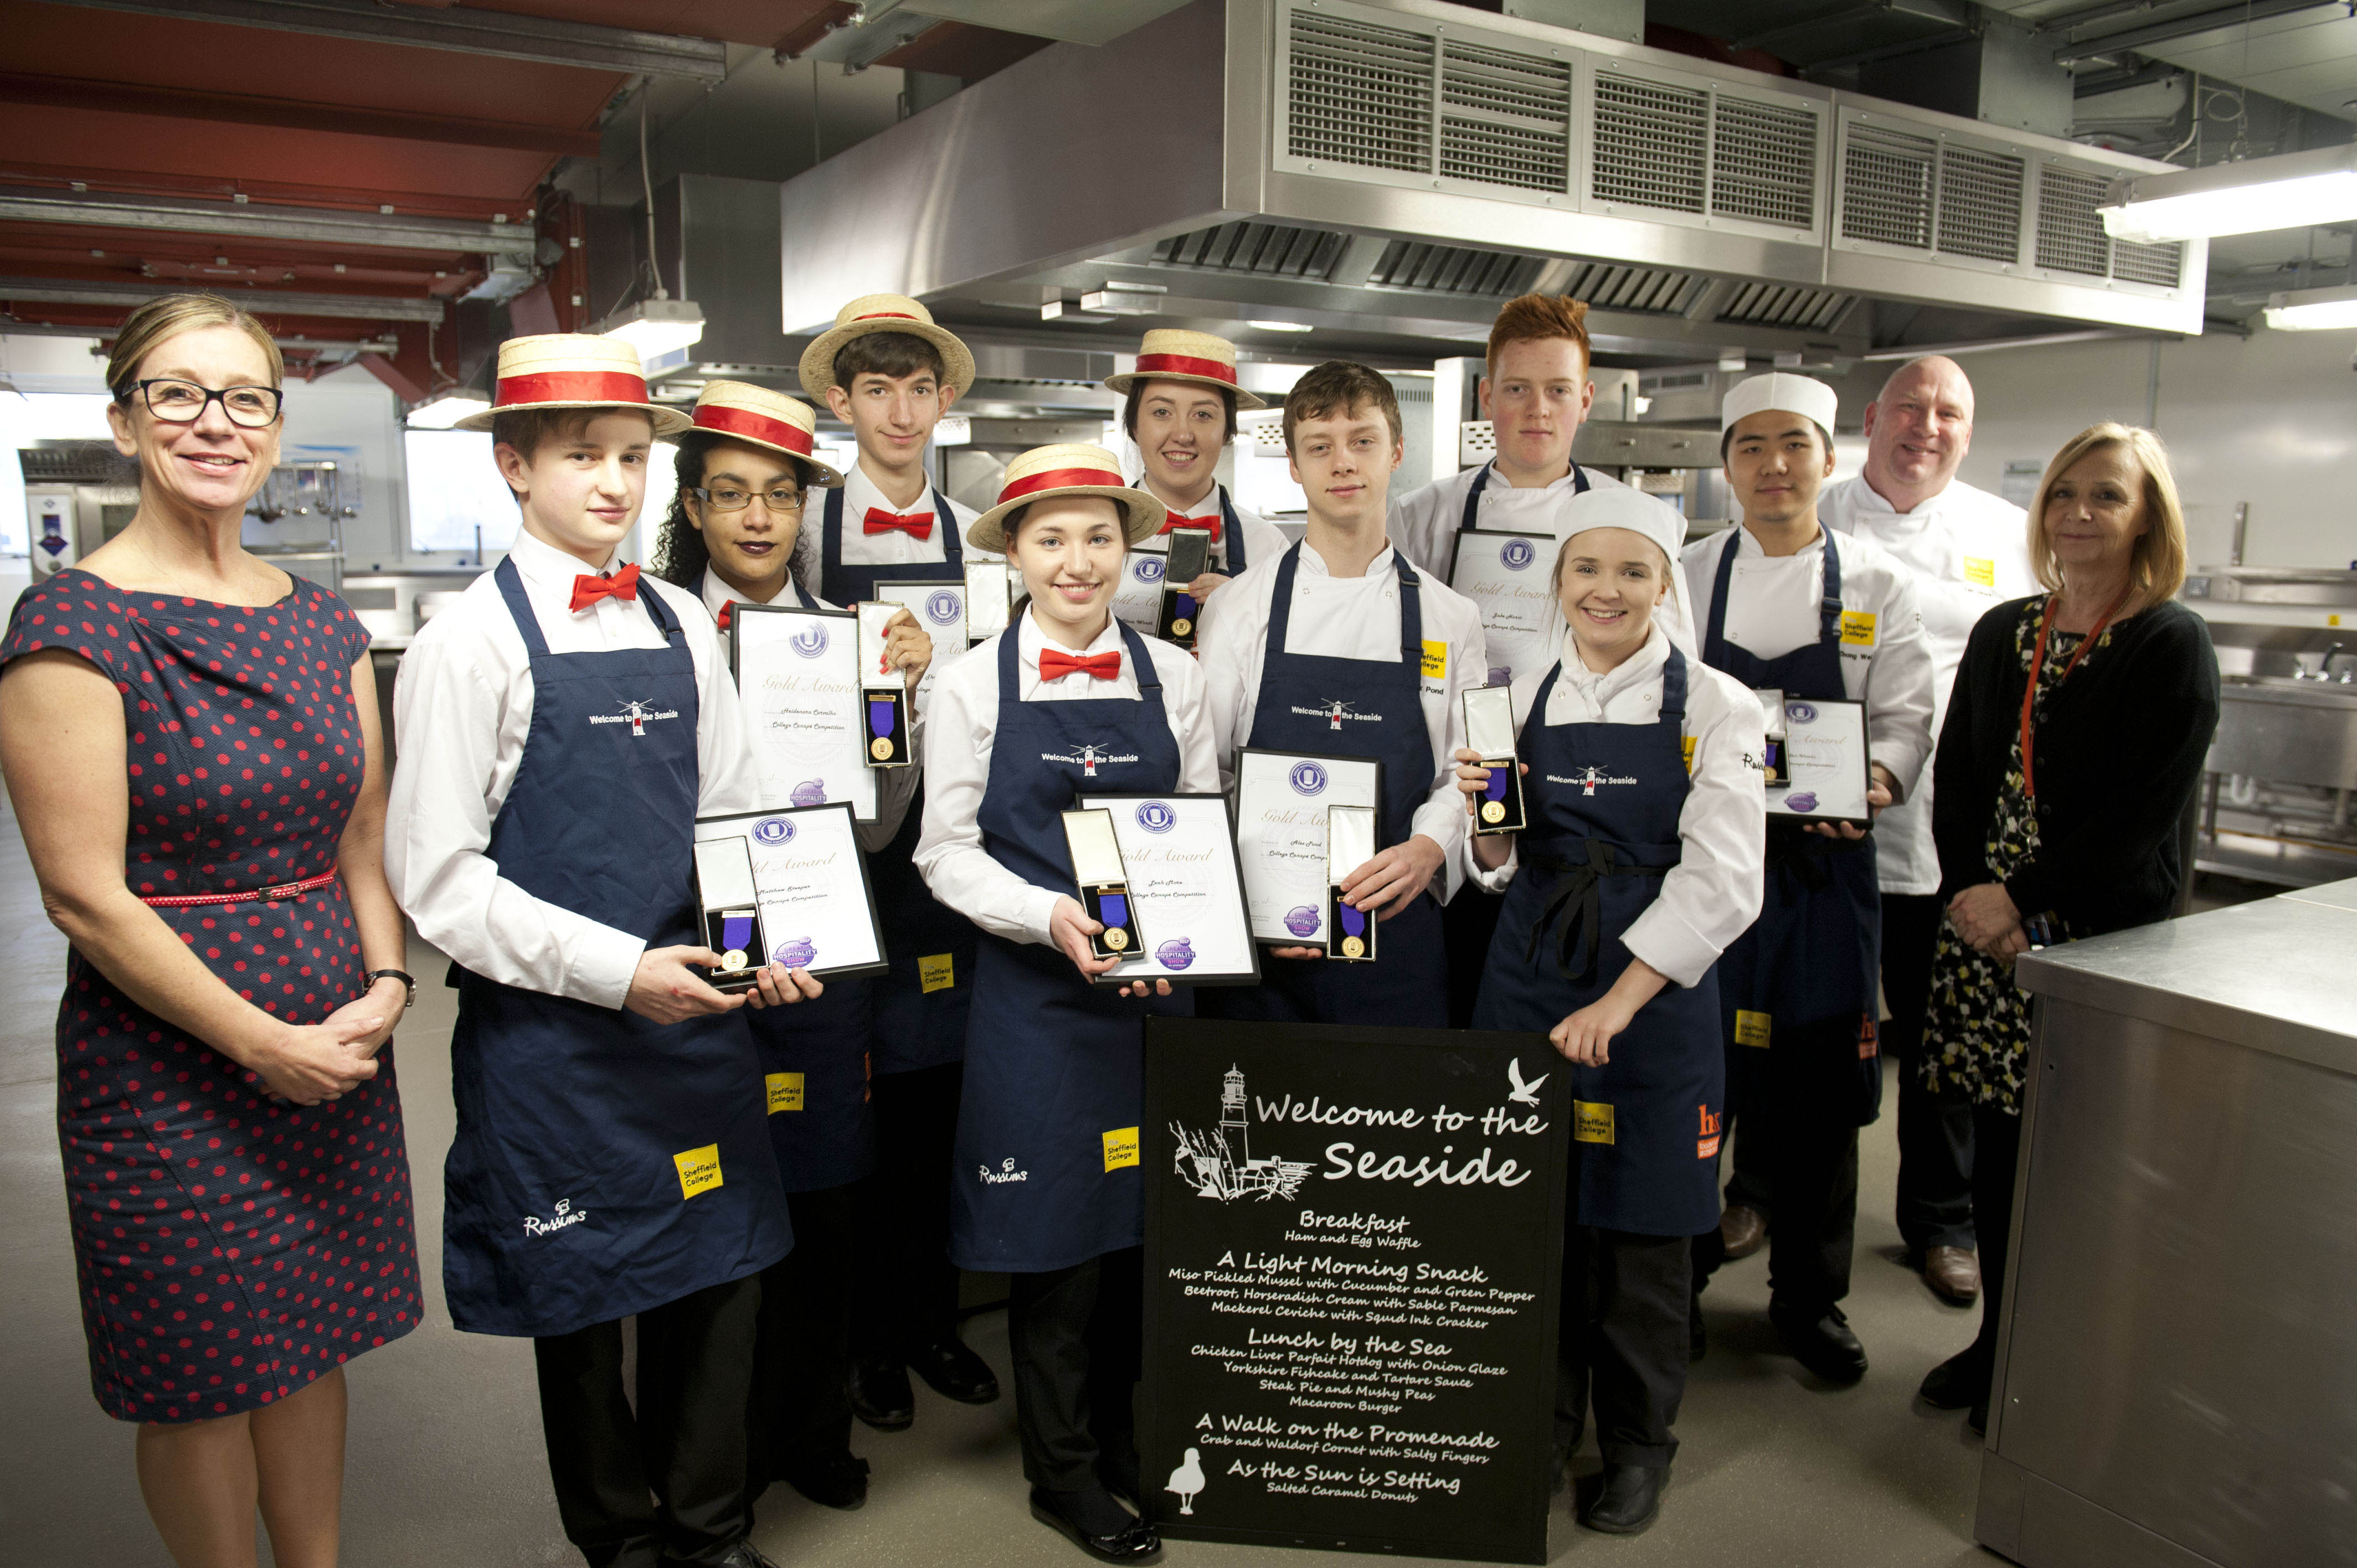 Catering Students Win Gold At Great Hospitality Show